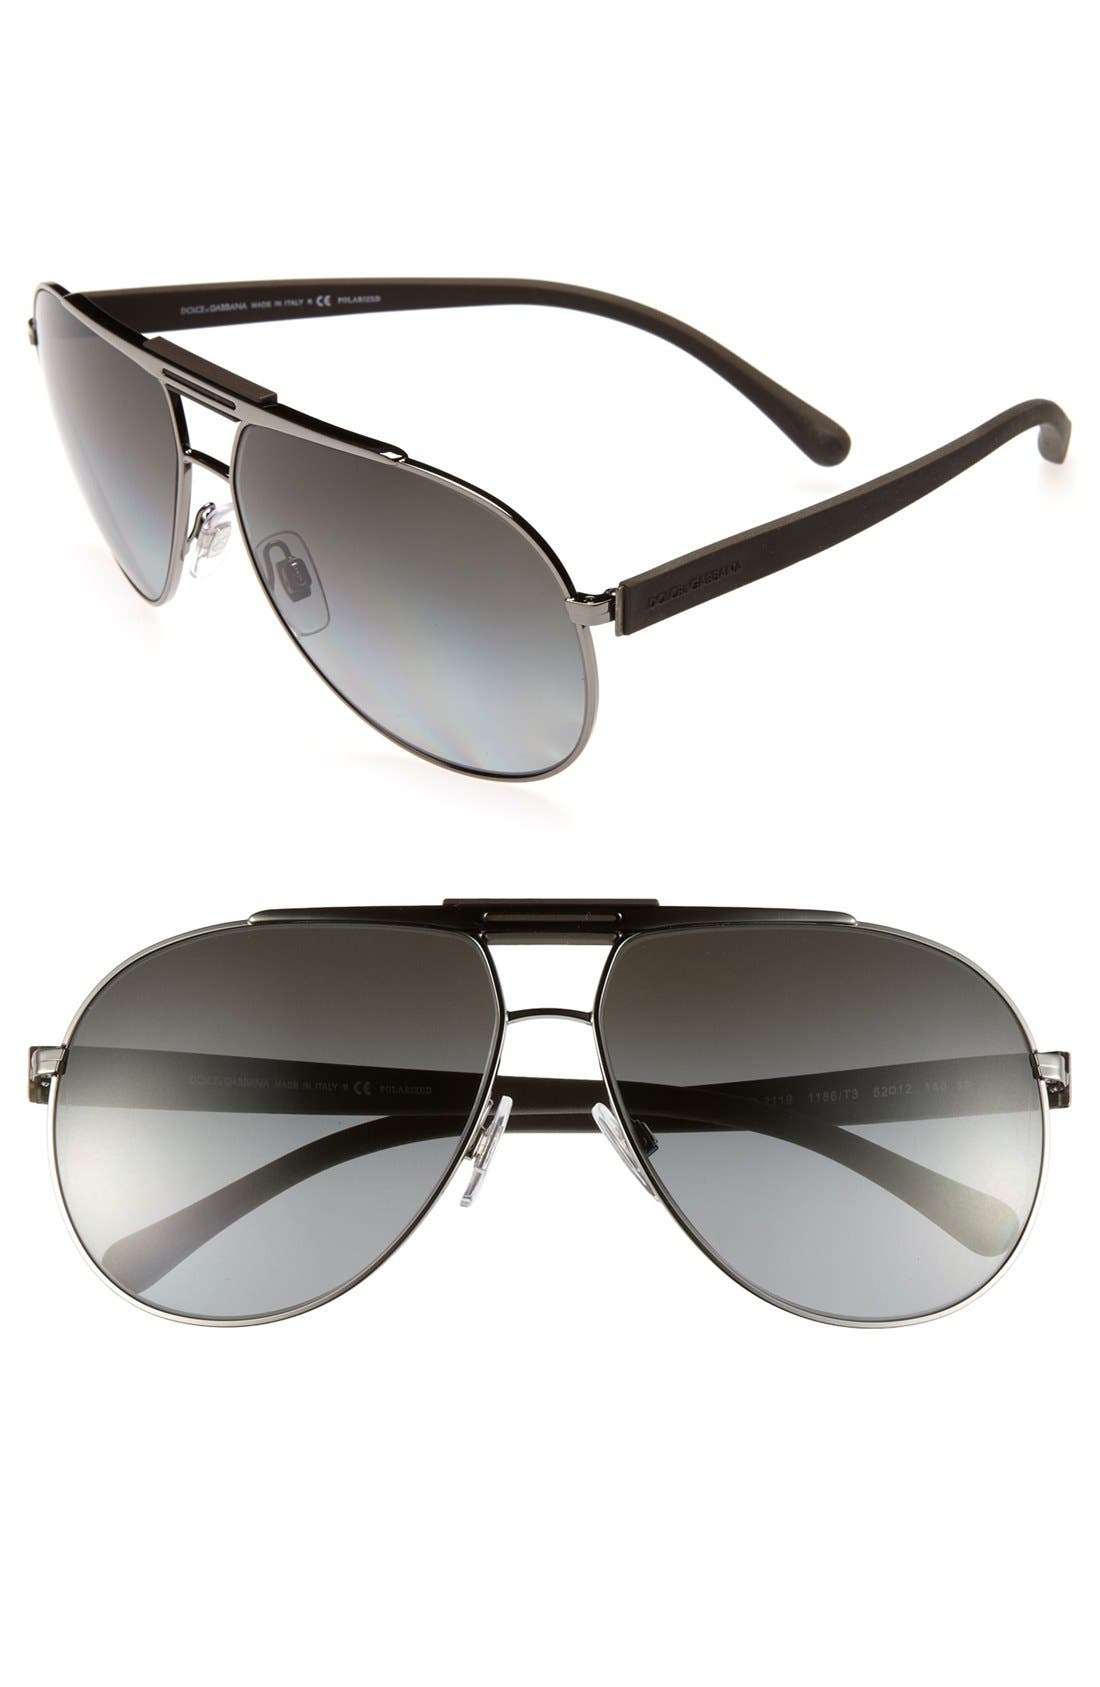 Alternate Image 1 Selected - Dolce&Gabbana 62mm Classic Aviator Polarized Sunglasses